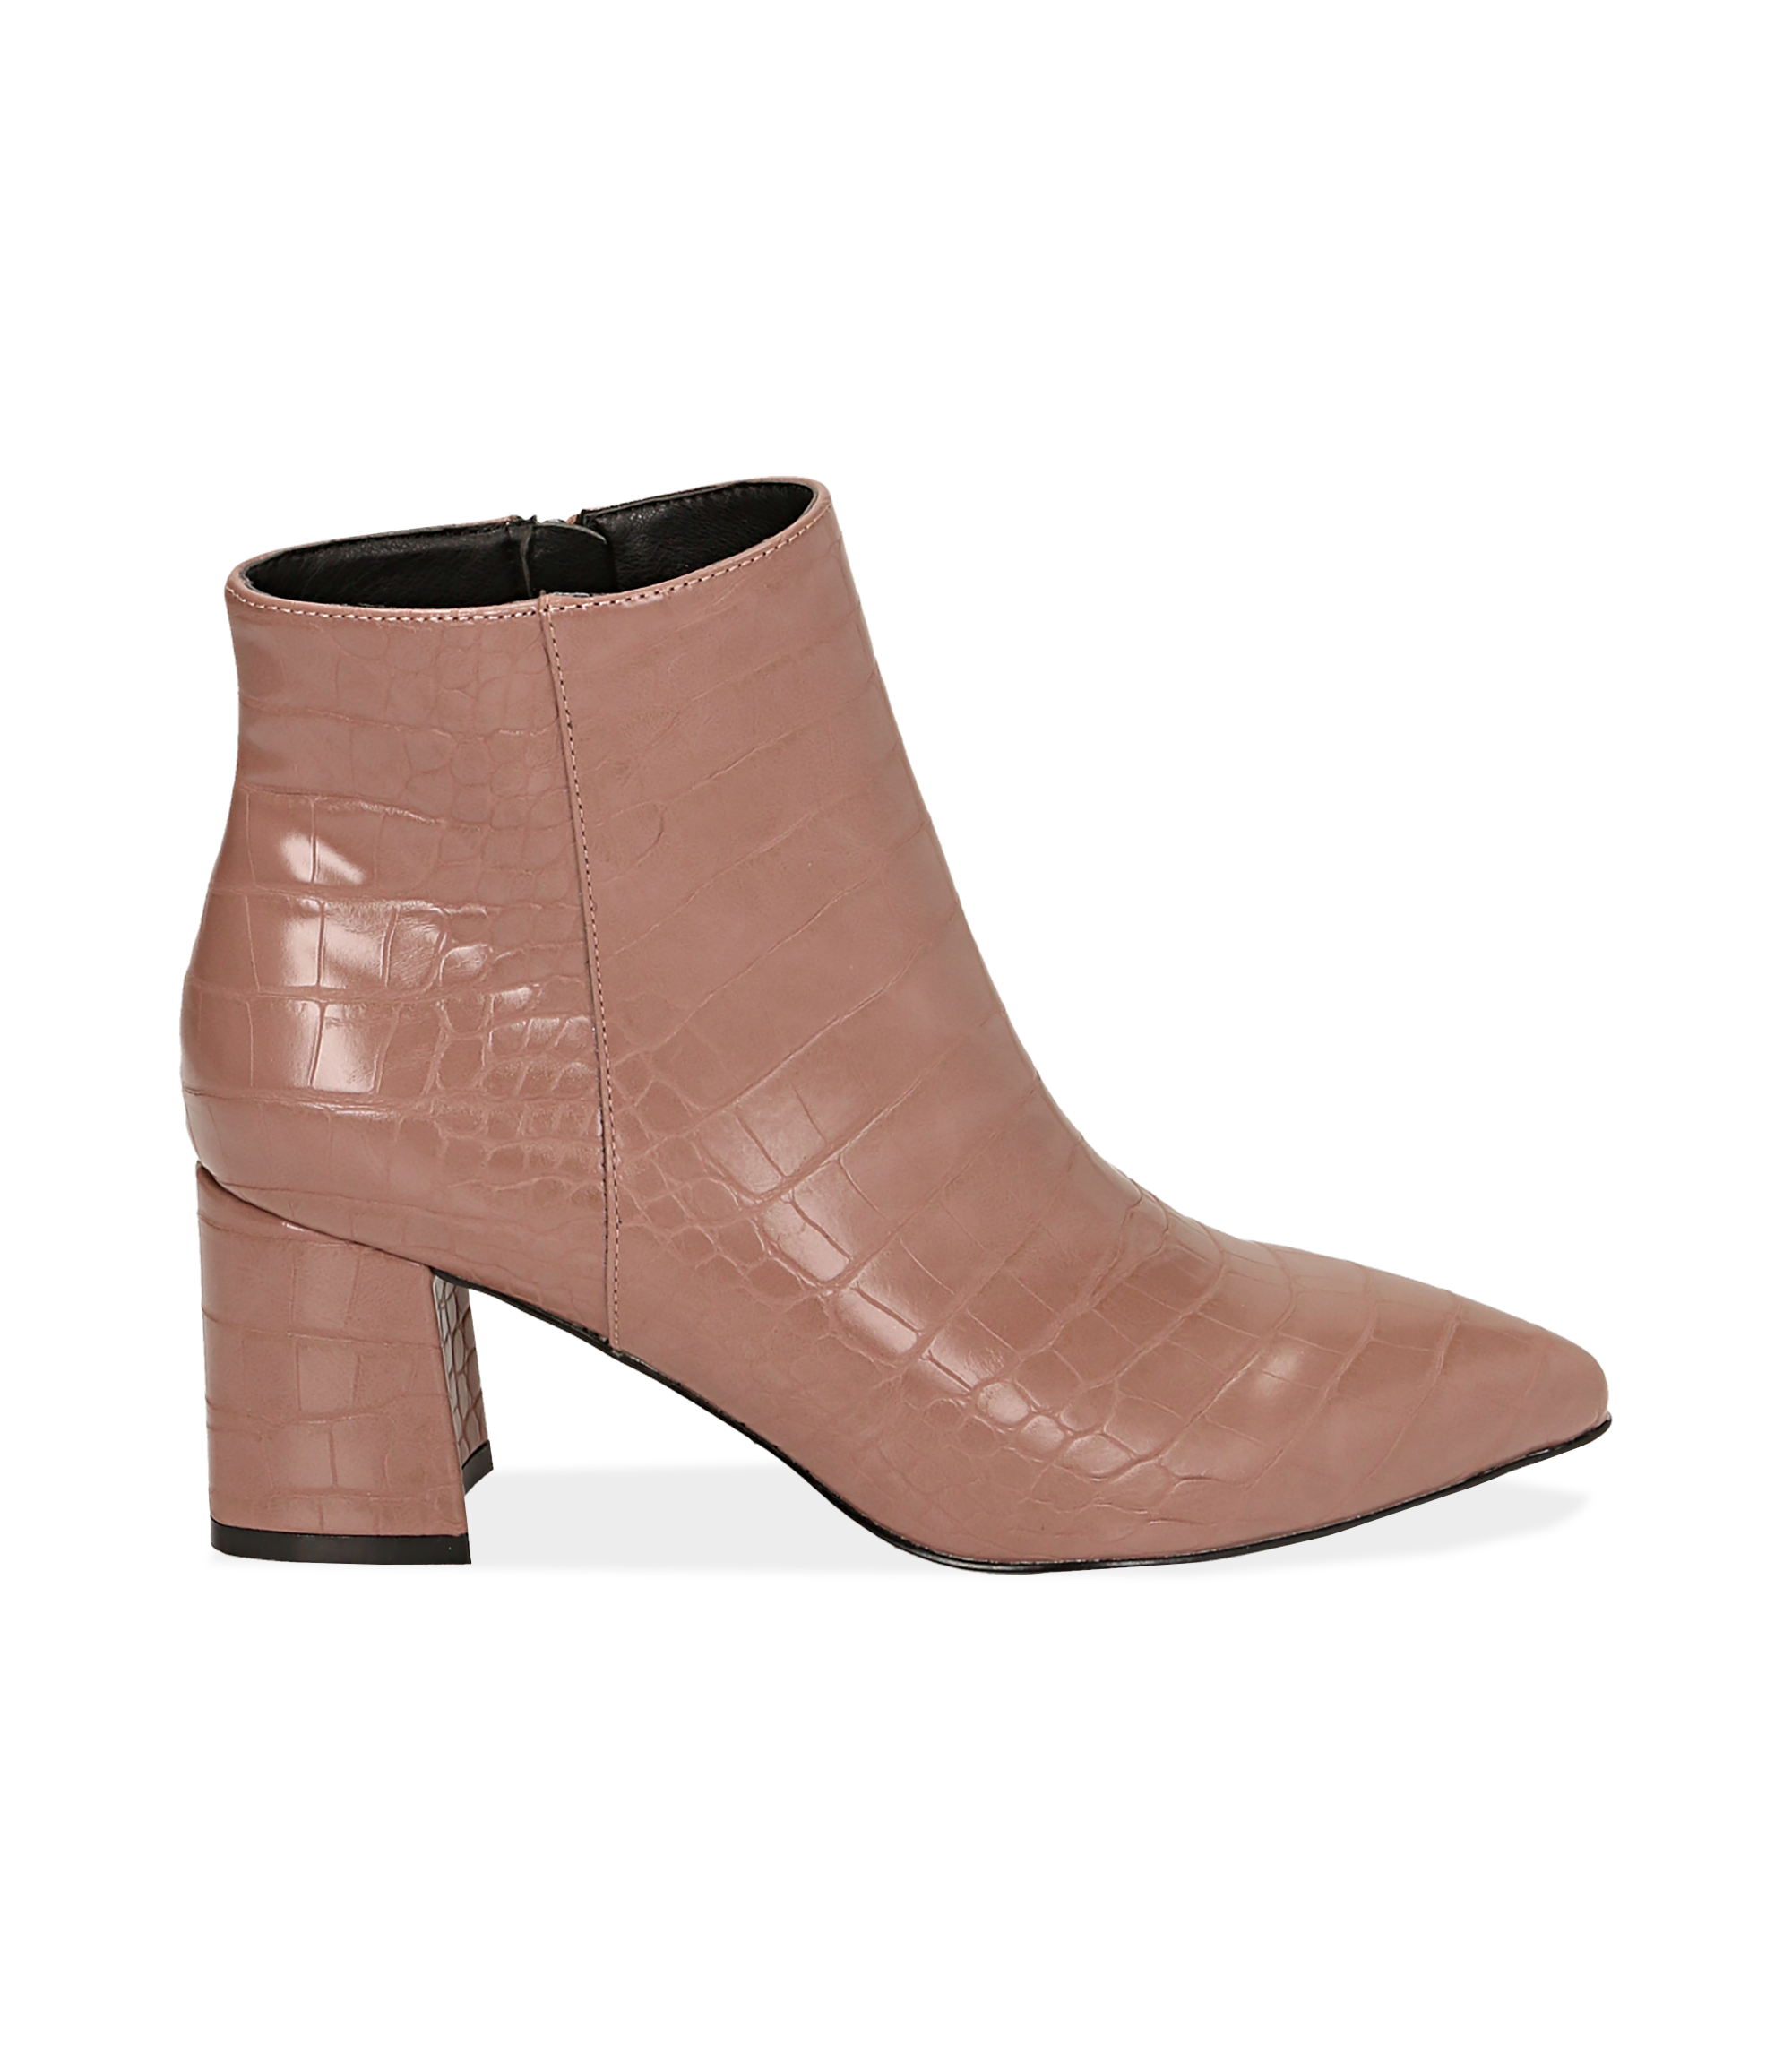 Ankle boots nude stampa cocco, tacco 6,50 cm